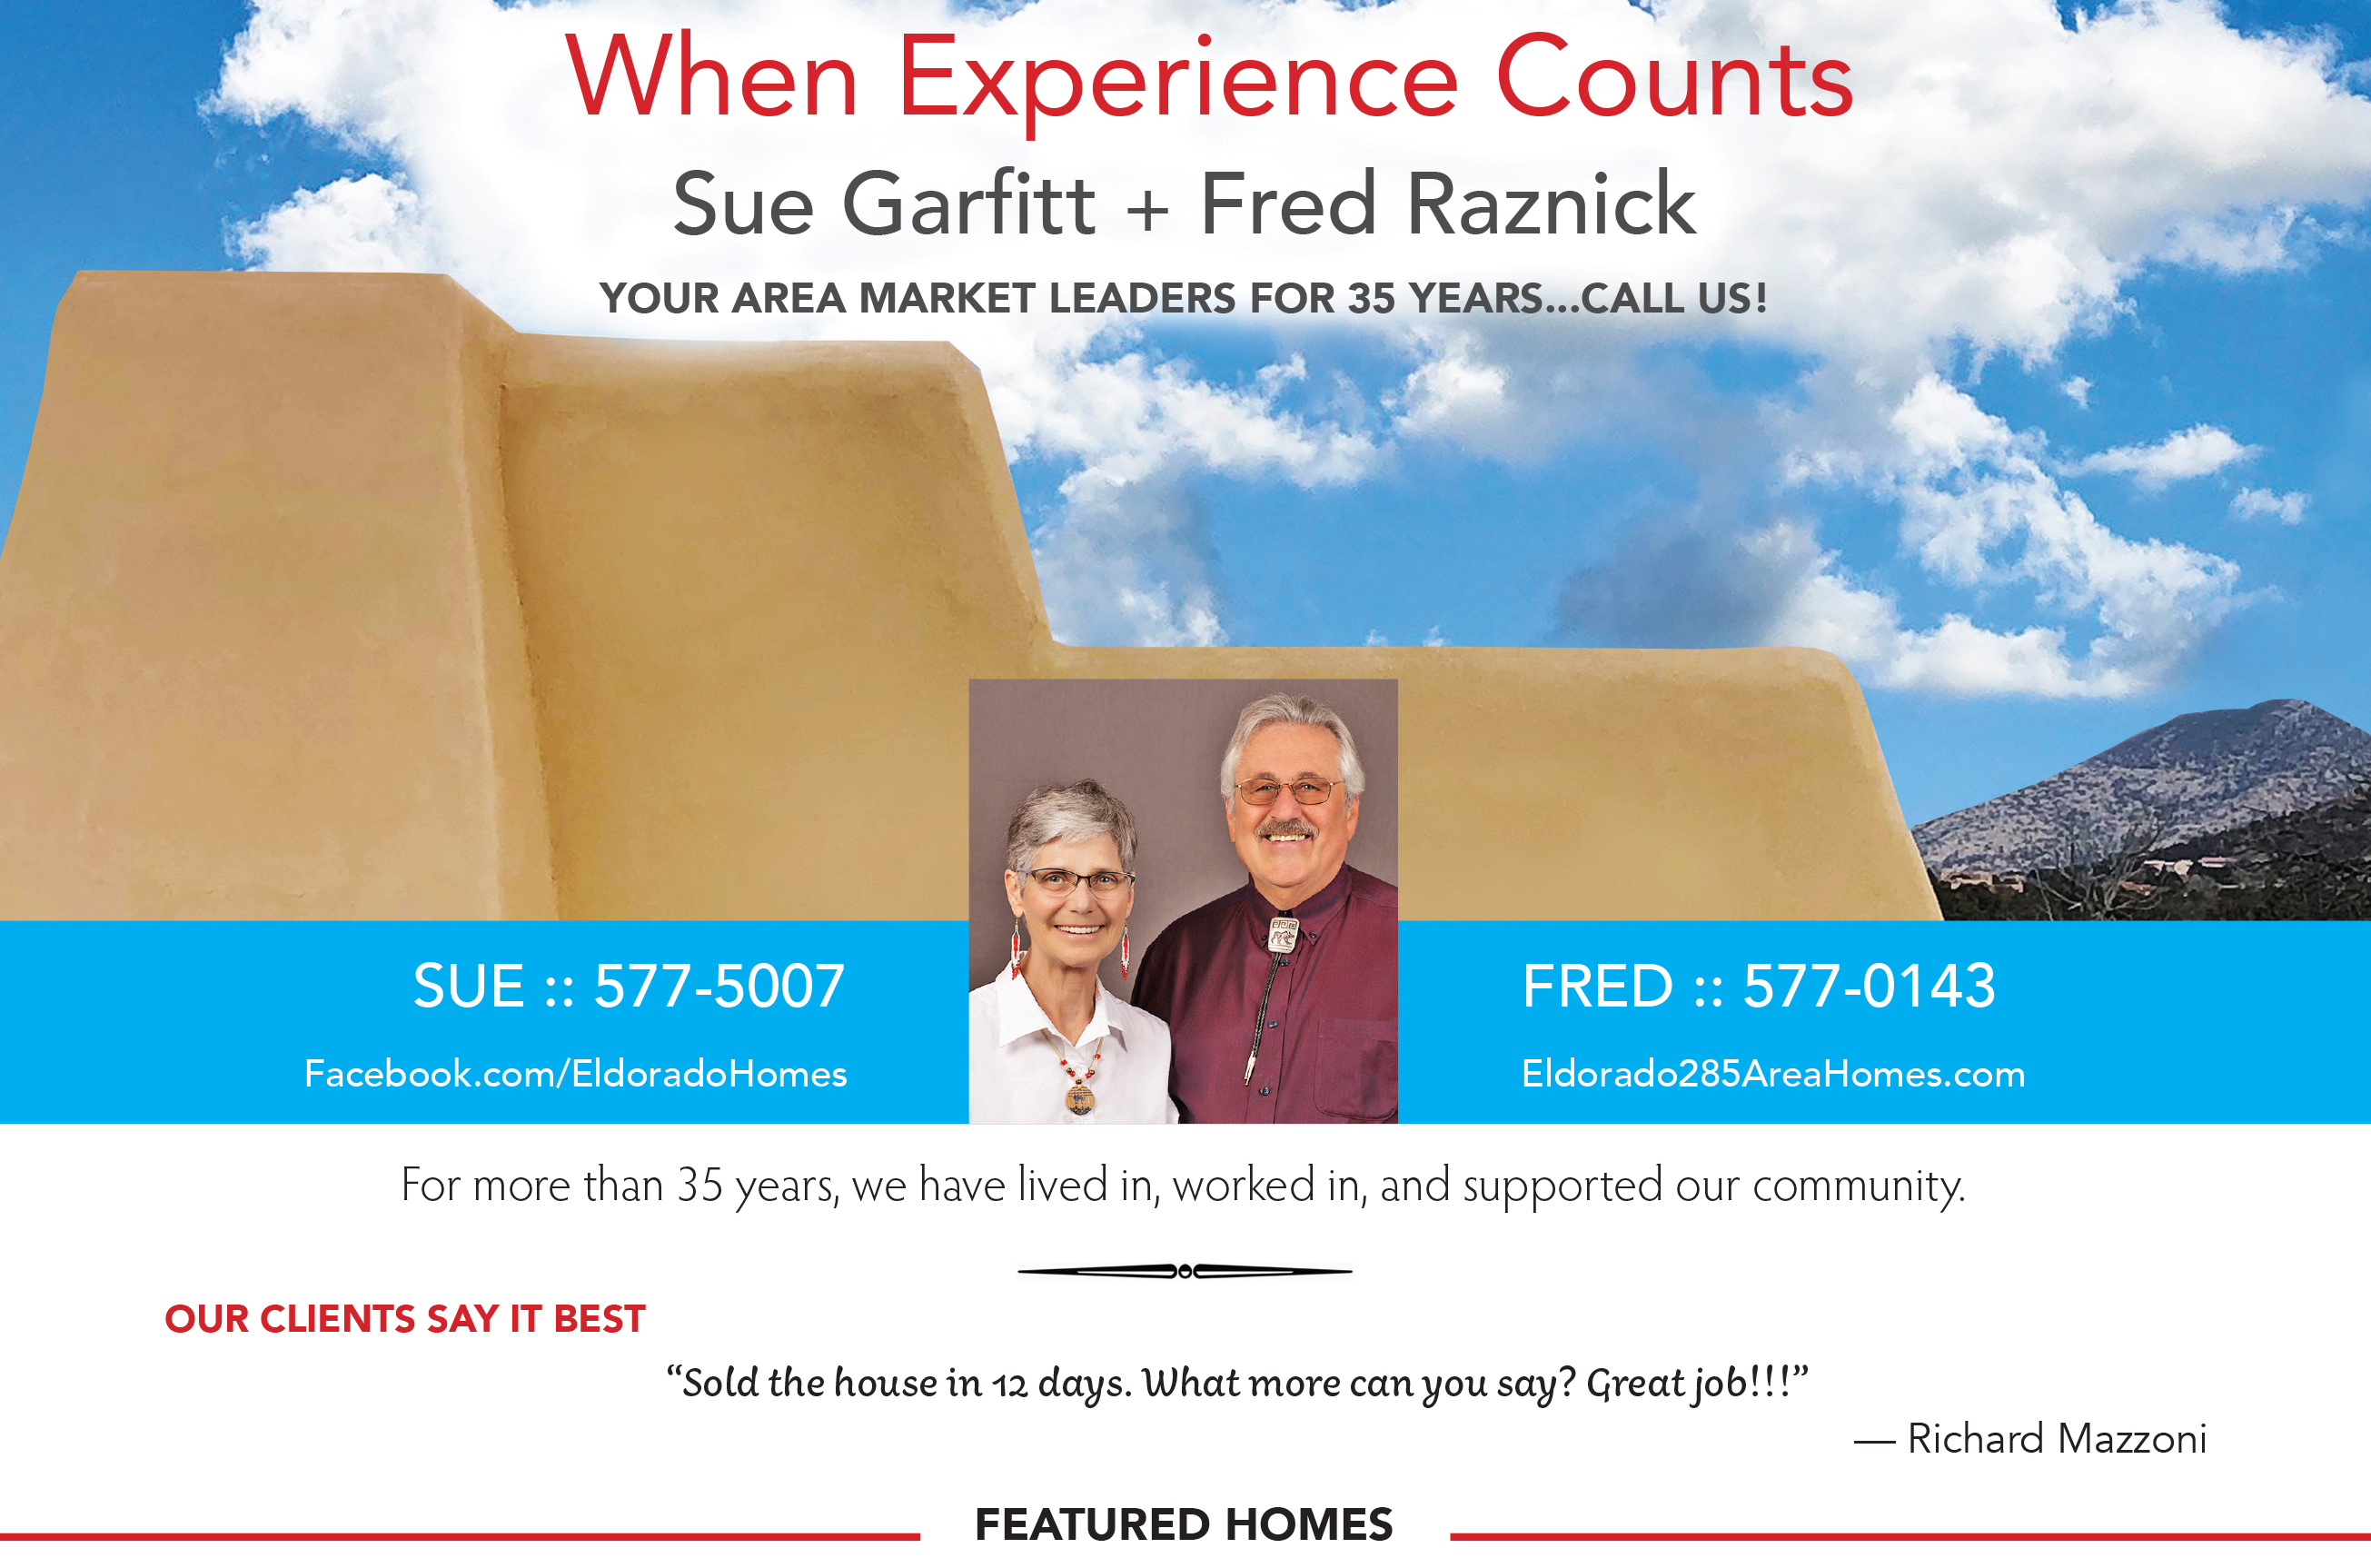 Did you see our ad in the September issue of Eldorado Living?